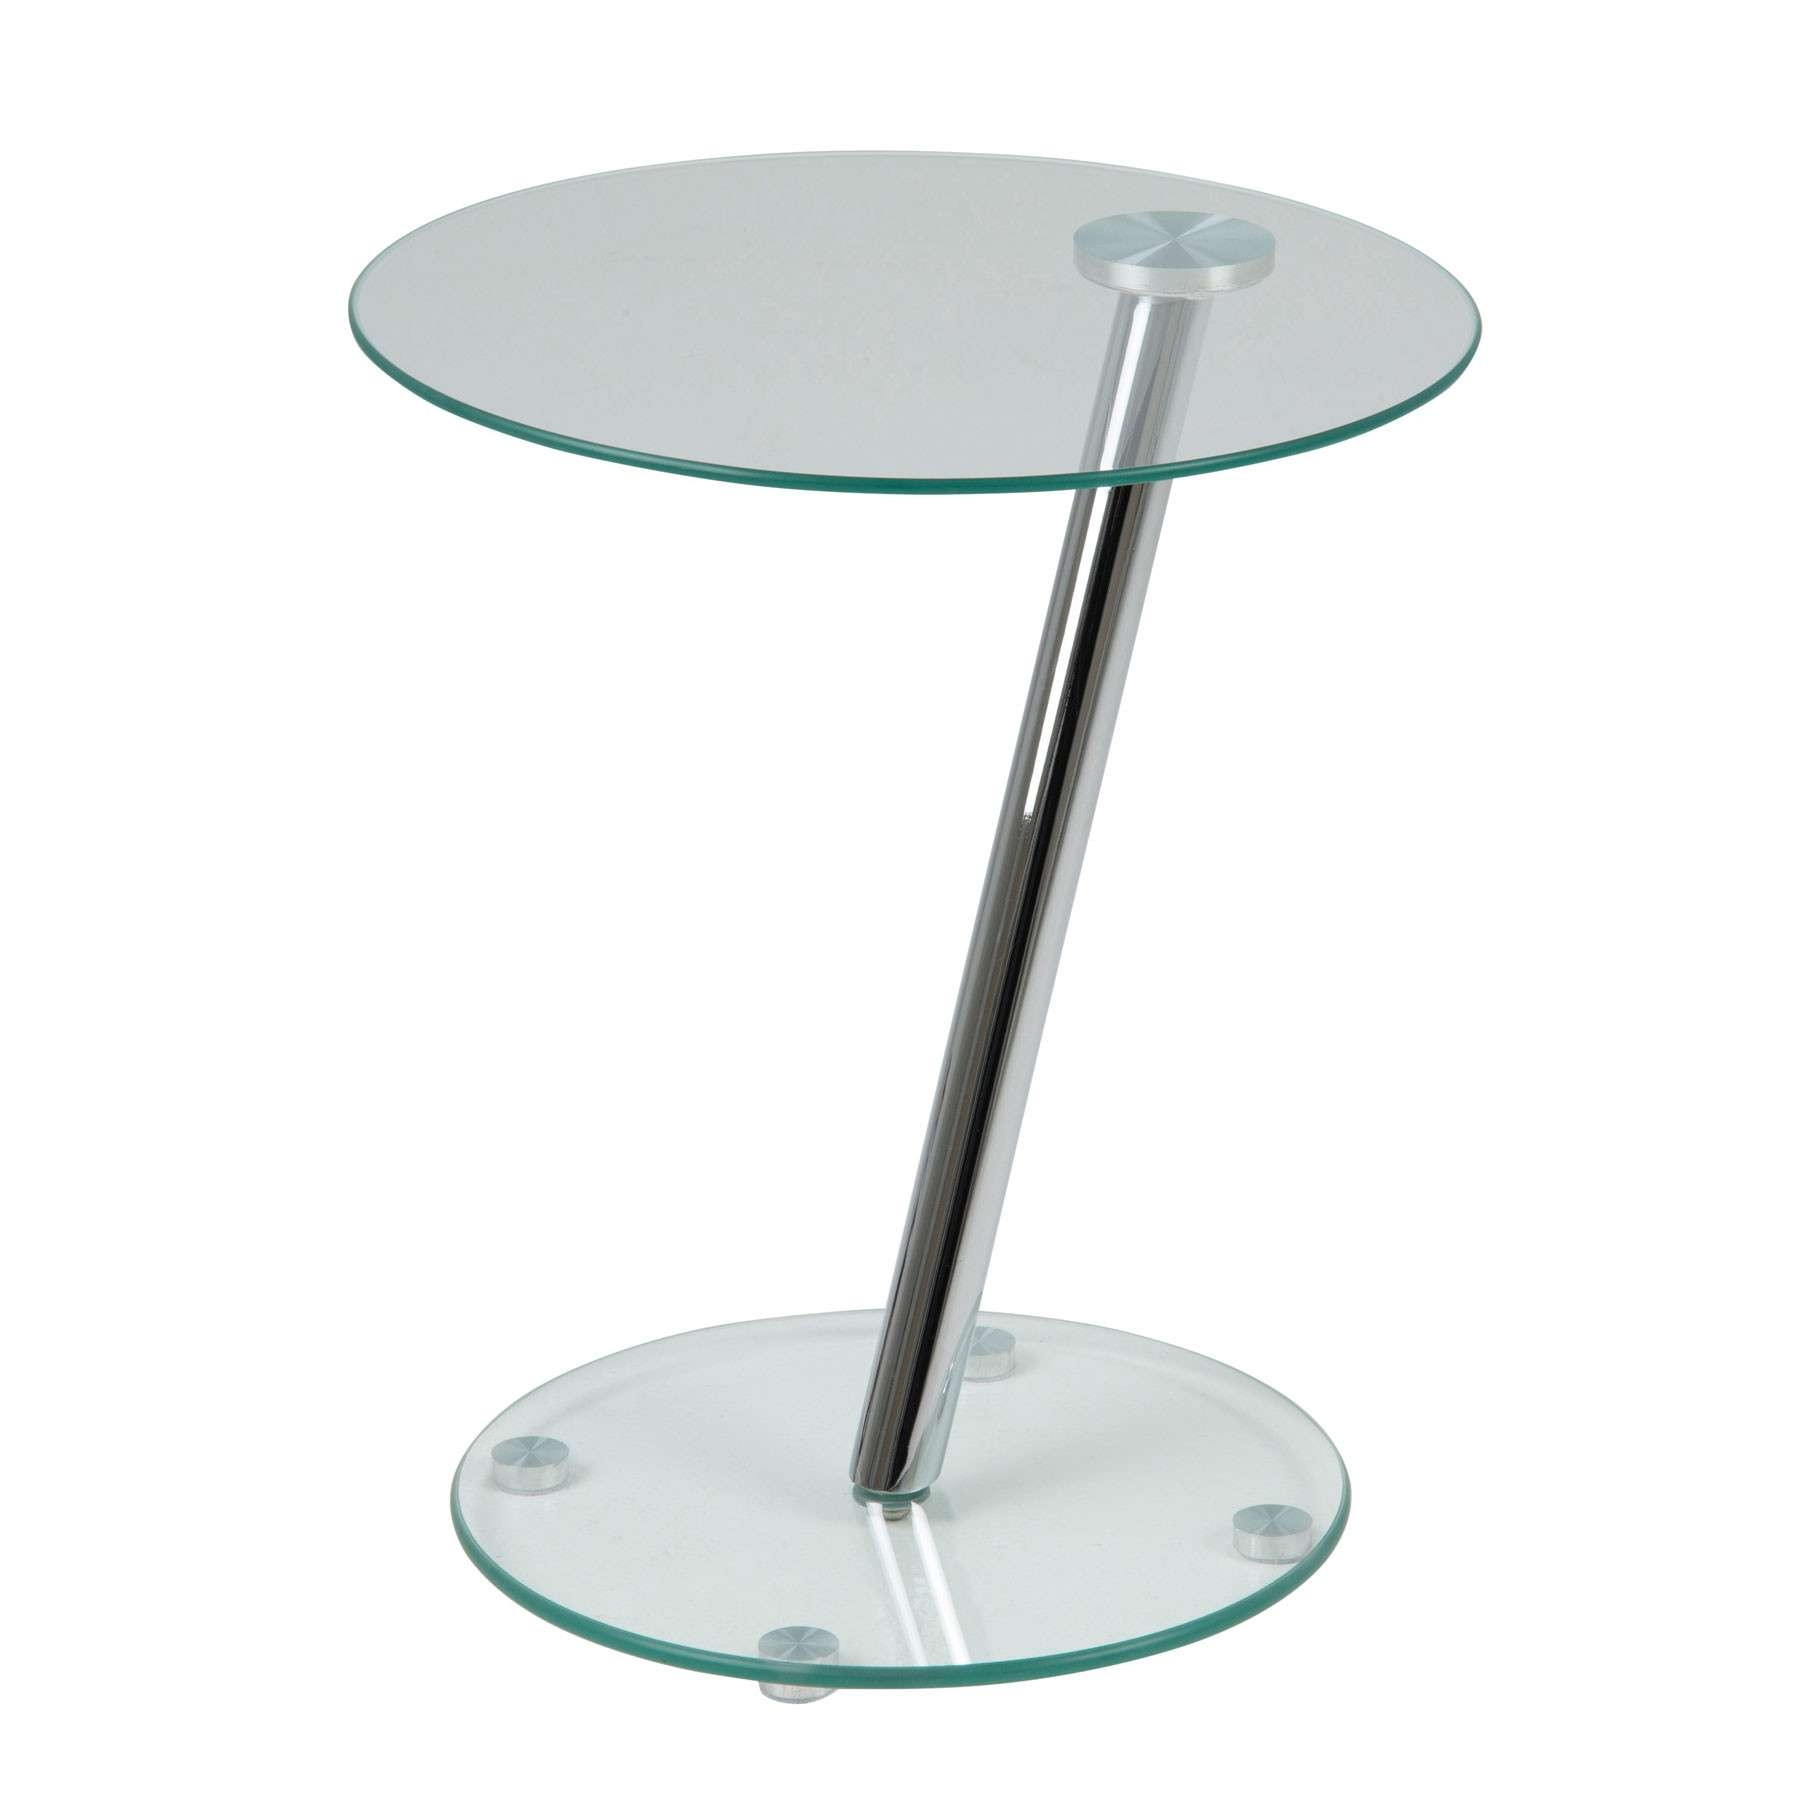 Coffee Tables : Round Glass Side Table Ikea Small Ebay Coffee For 2017 Circular Glass Coffee Tables (View 14 of 20)